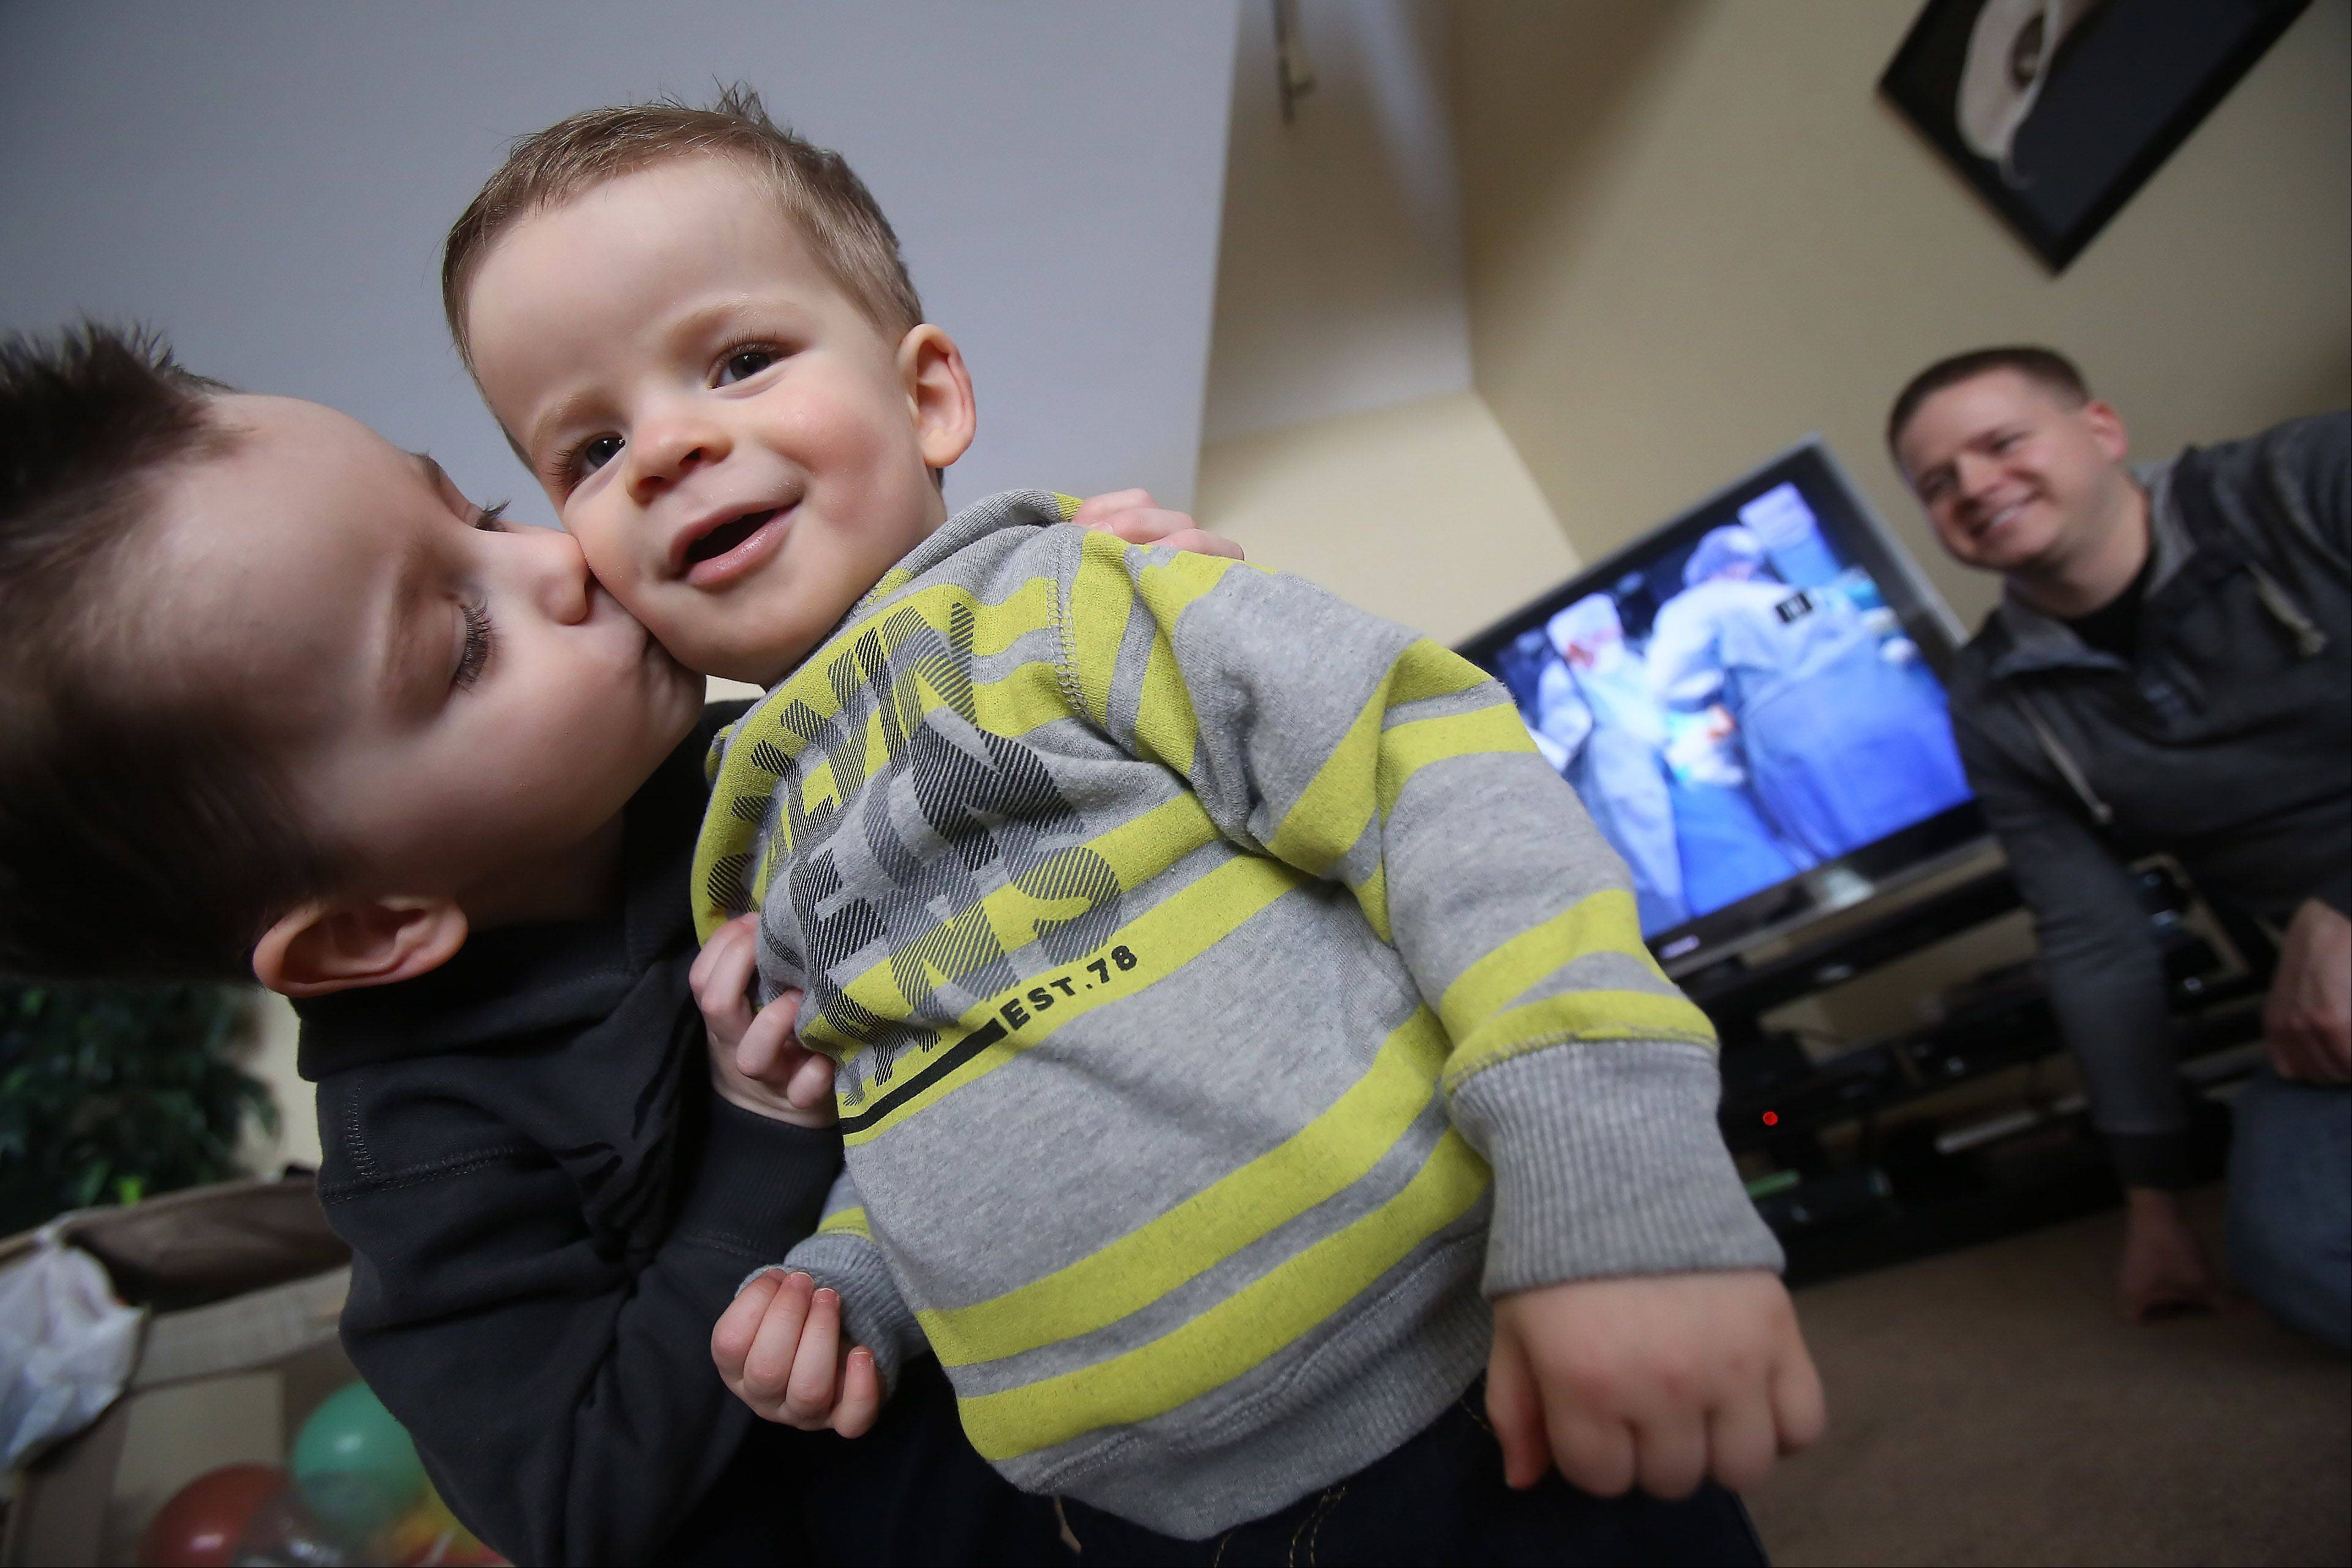 Dean Bacon, 3, kisses his 18-month-old brother Christopher as his father, Greg, watches. Dean's 2010 birth was featured on national TV Sunday as part of Microsoft's Super Bowl ad.